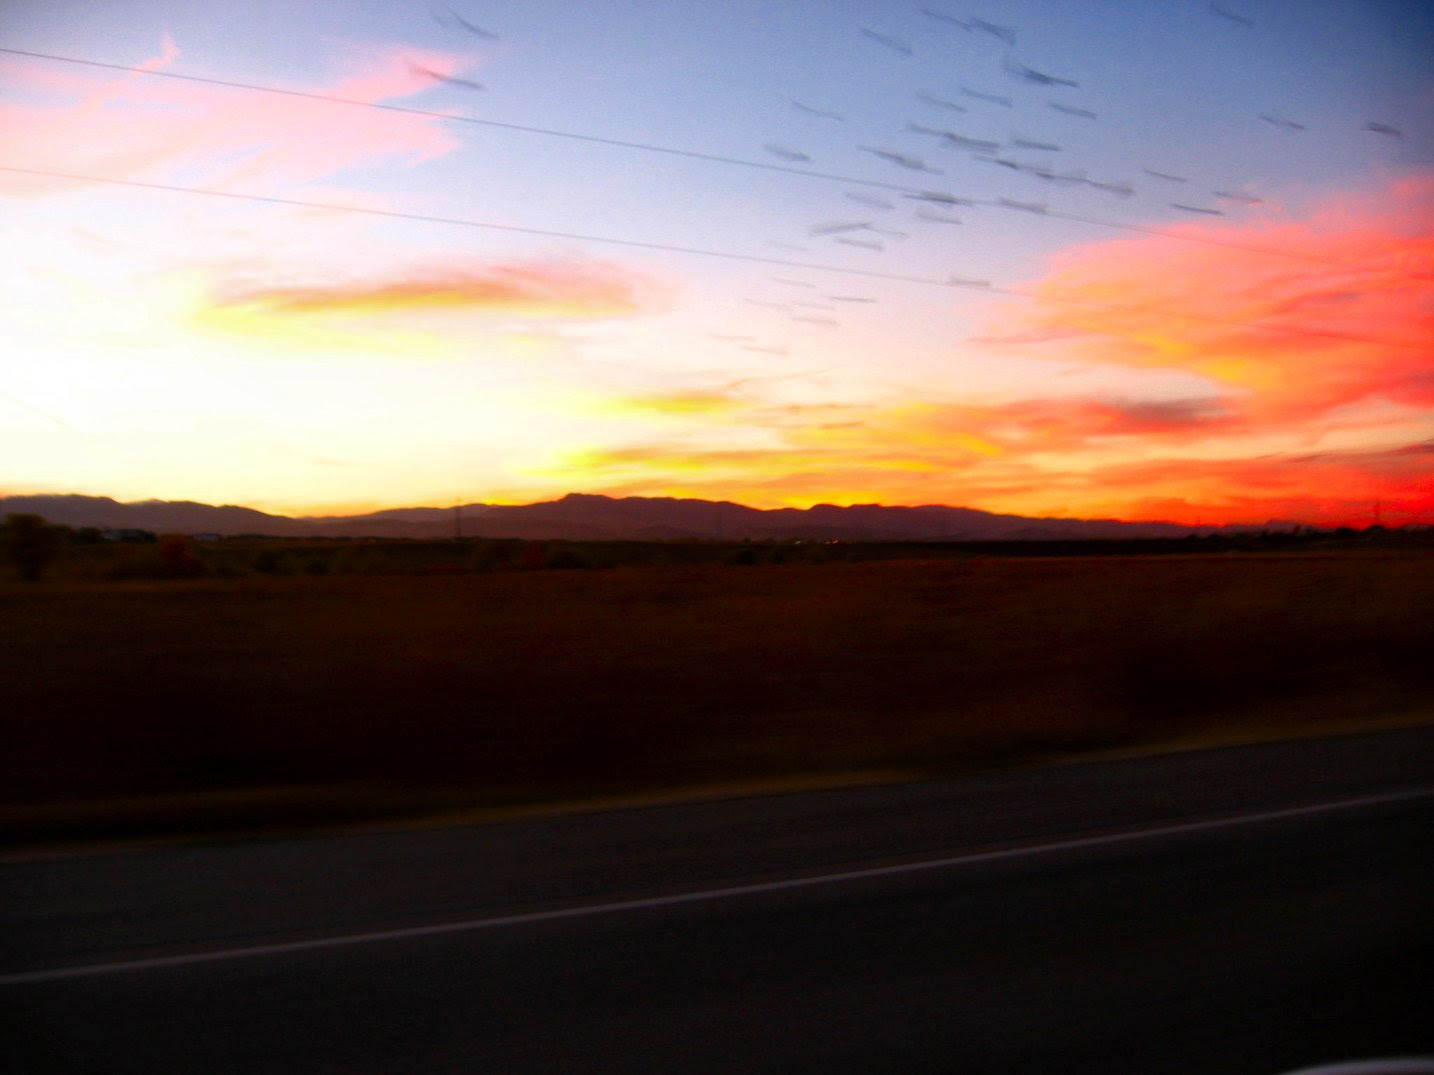 Horizon Sunrise Photo with Rocky Mountains in the Background Driving on Hight - photo by Mike Fisk - soul-amp.com